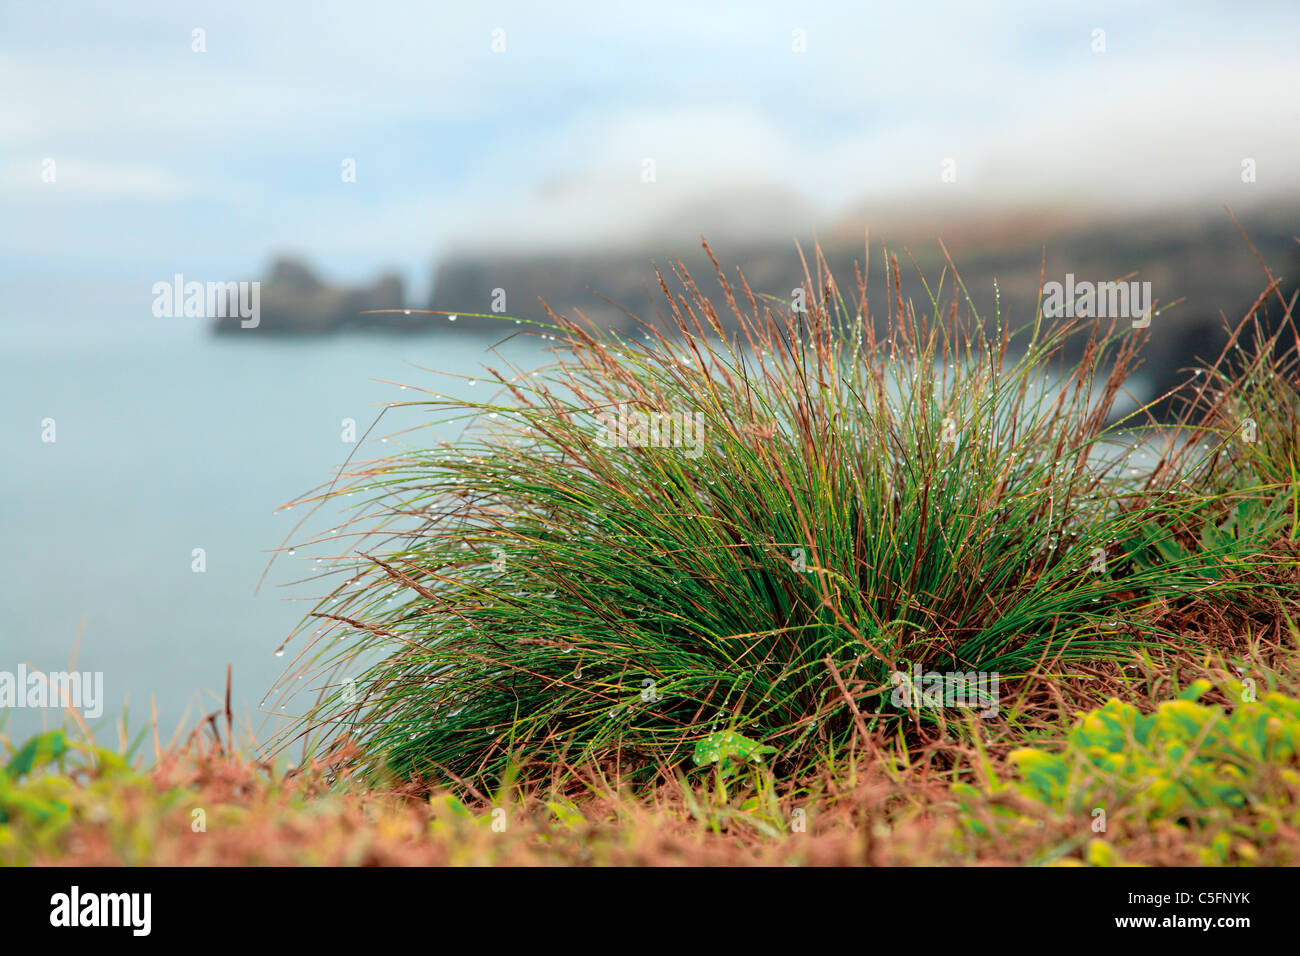 Azores islands endemic flora: Festuca petraea Guthnick. Portuguese name is 'bracel-da-rocha' or 'braceu'. - Stock Image